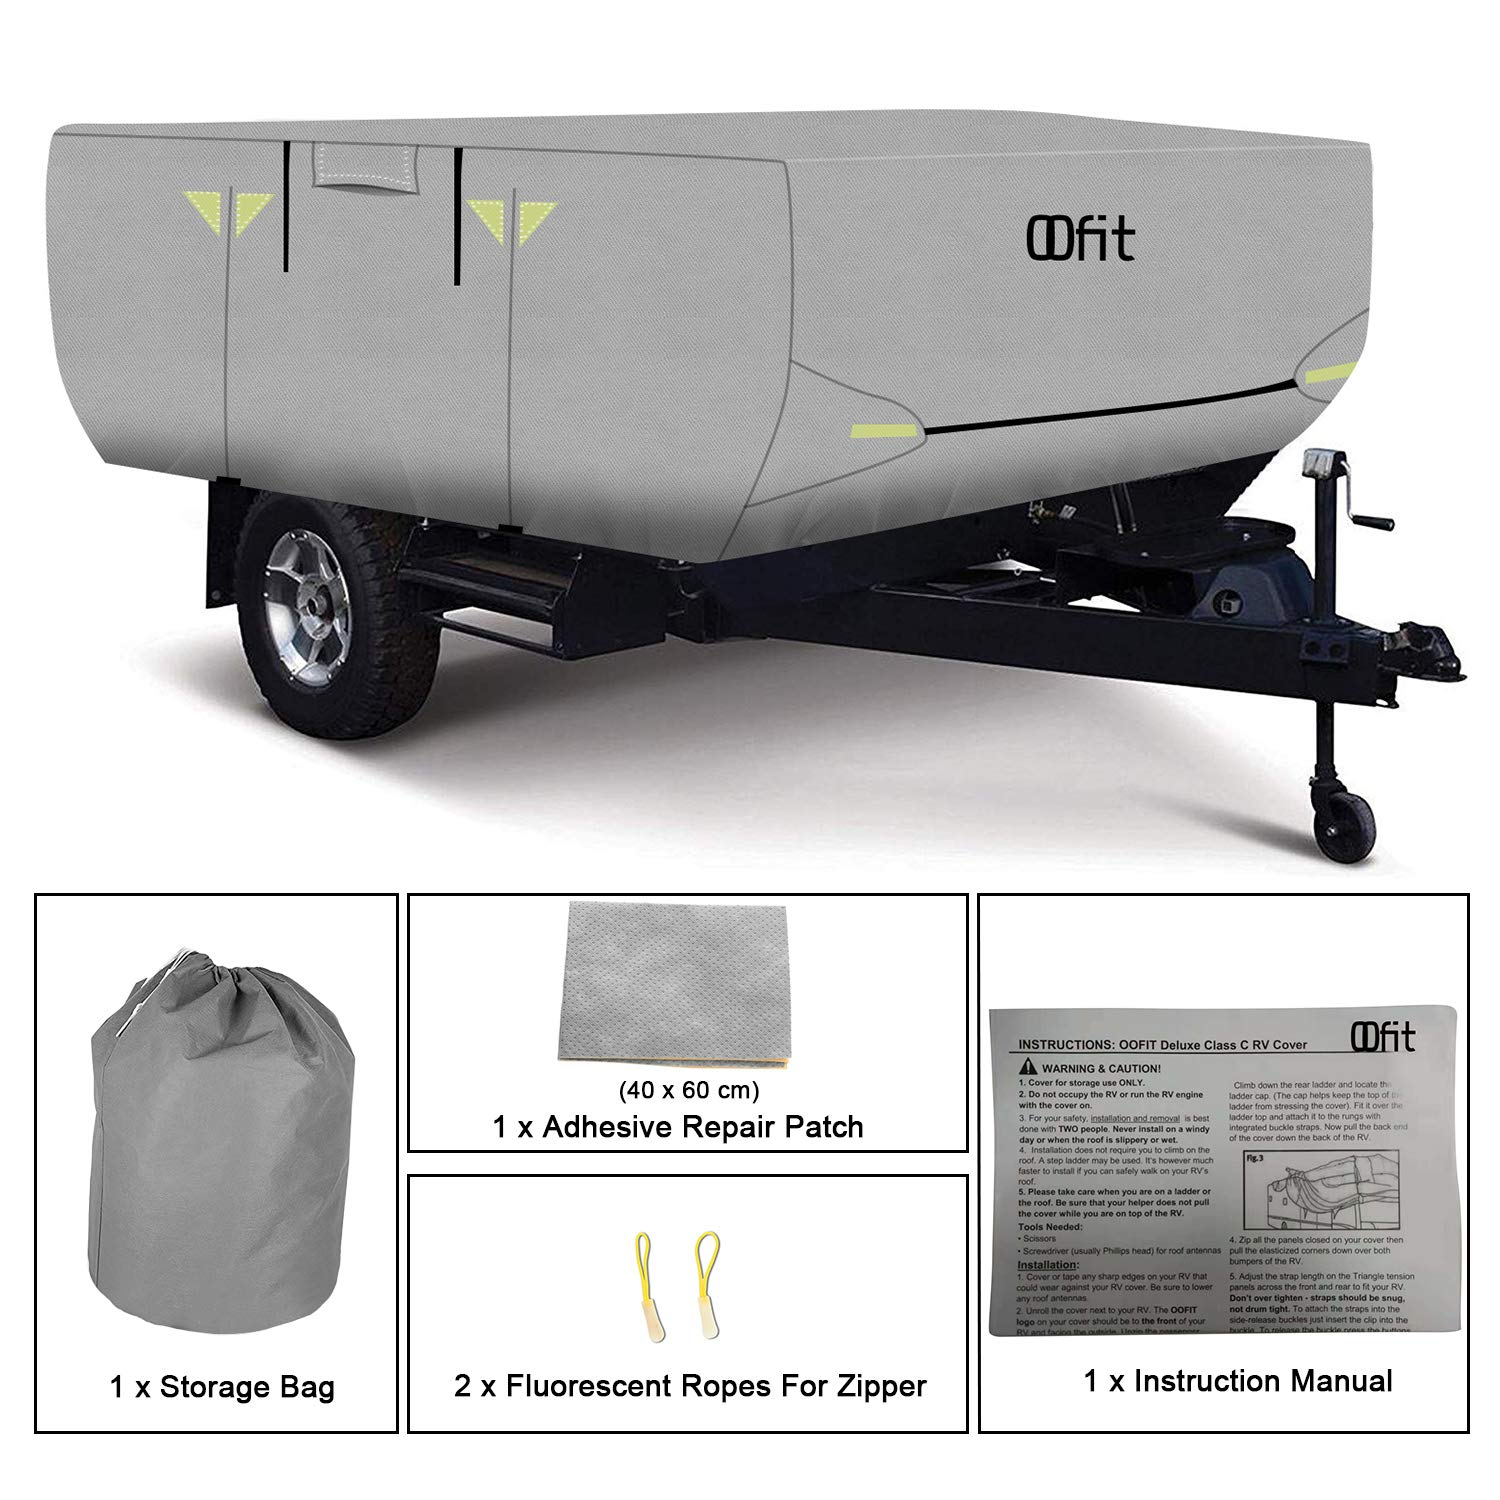 OOFIT 4 Layers Pop-up Camper Cover 12' – 14' Rip-Stop Anti-UV Folding Camper Trailer RV Cover with Adhesive Repair Patch by OOFIT (Image #6)